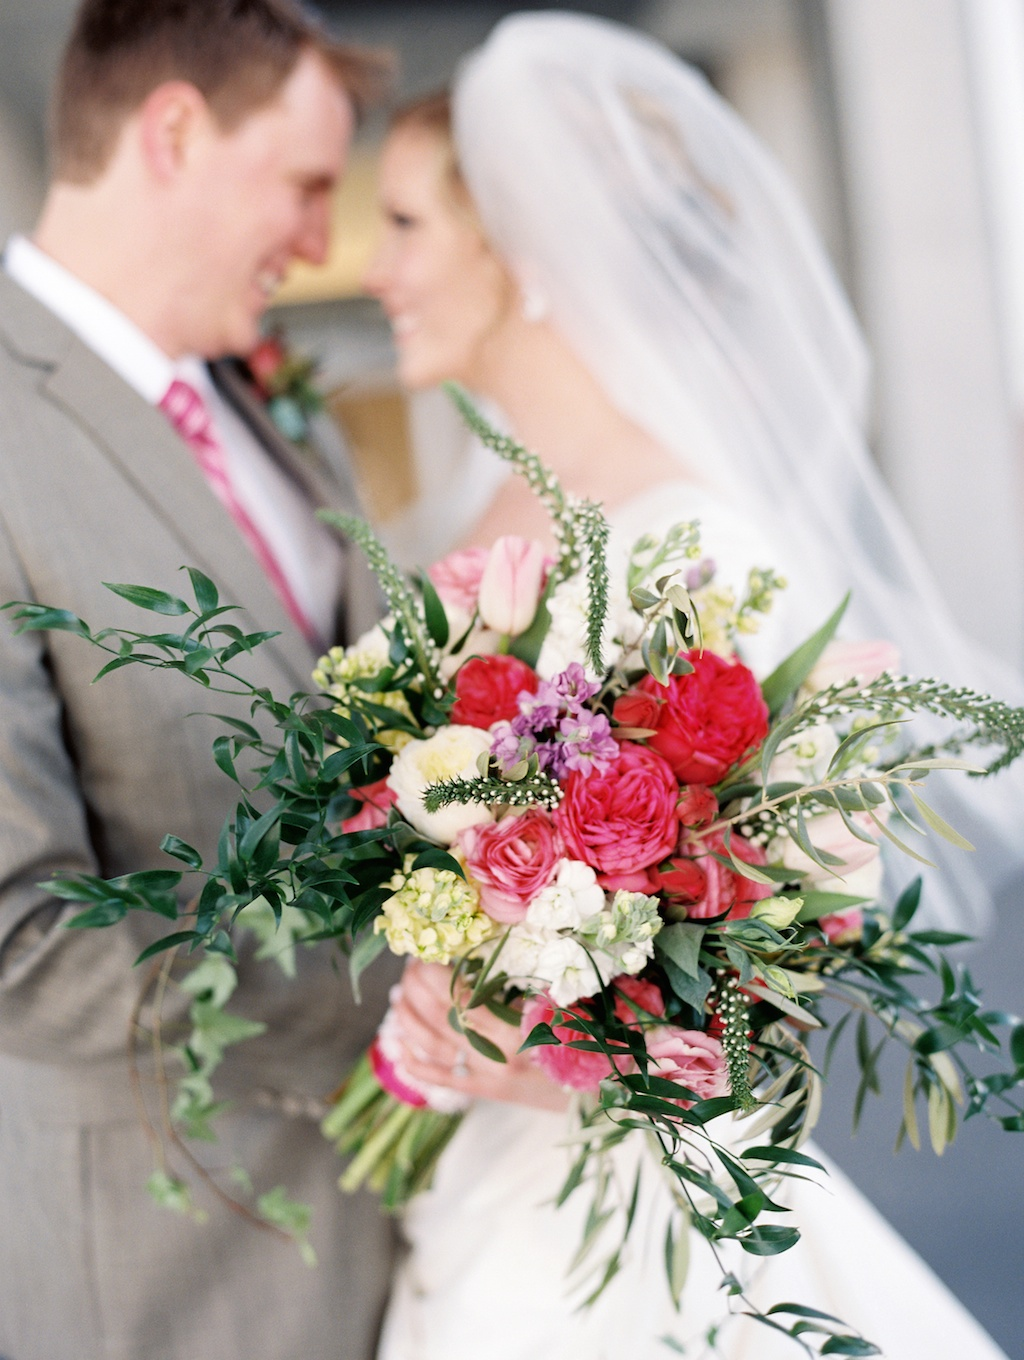 spring wedding flowers pink garden rose organic style bouquet wedding flowers utah calie rose utah weddings